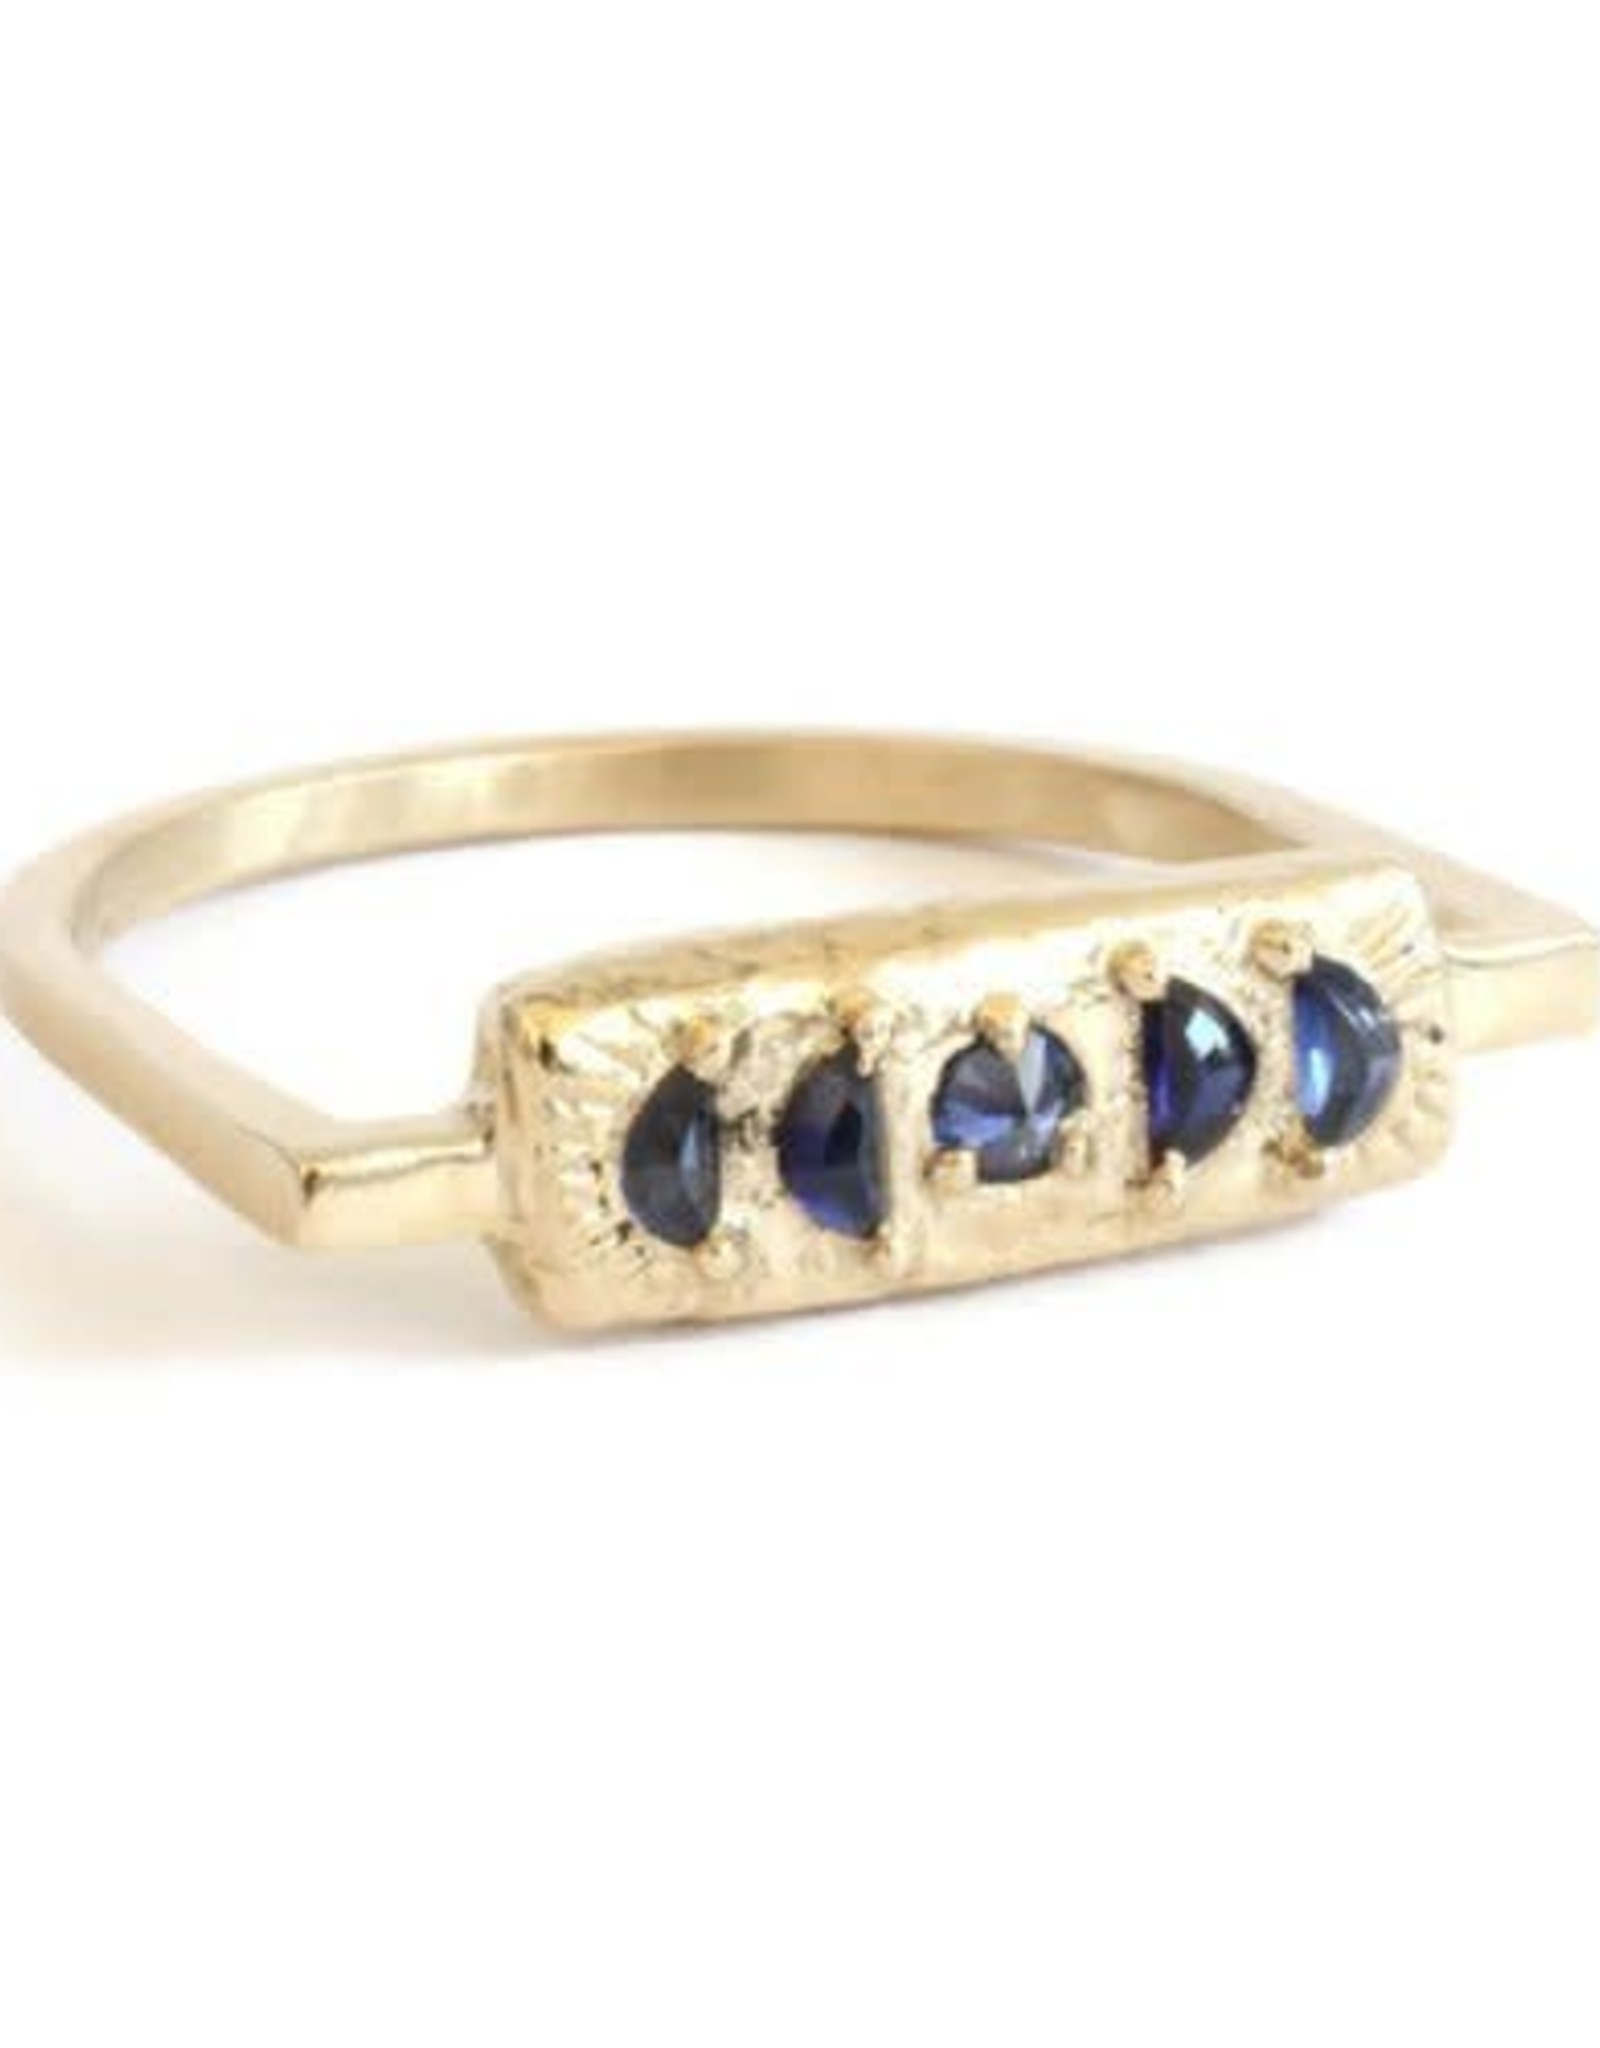 Lio & Linn Moonphase Ring - Blue Sapphire